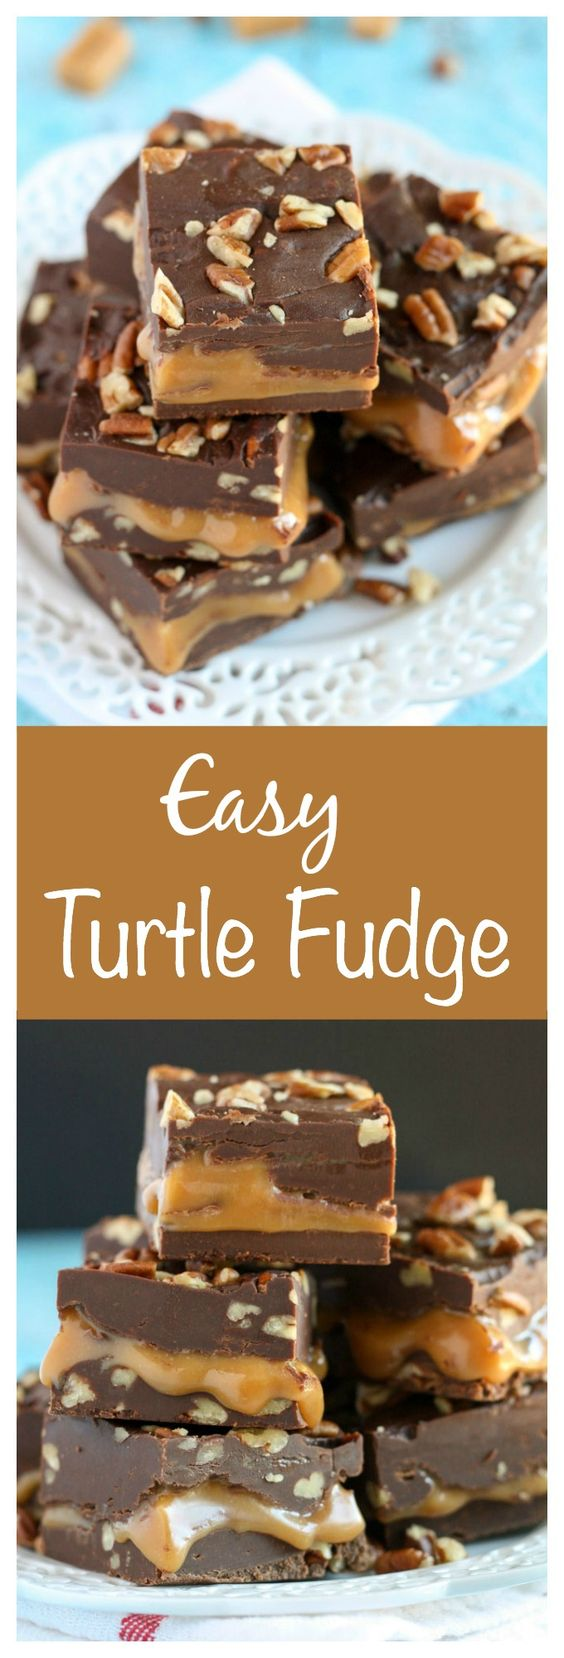 Easy Turtle Fudge Recipe via Live Well Bake Often - An easy chocolate fudge recipe with a caramel center and chopped pecans, YUM! #chrstmascookies #christmascandy #christmastreats #holidaydesserts #holidayrecipes #christmascandies #holidaygiftplates